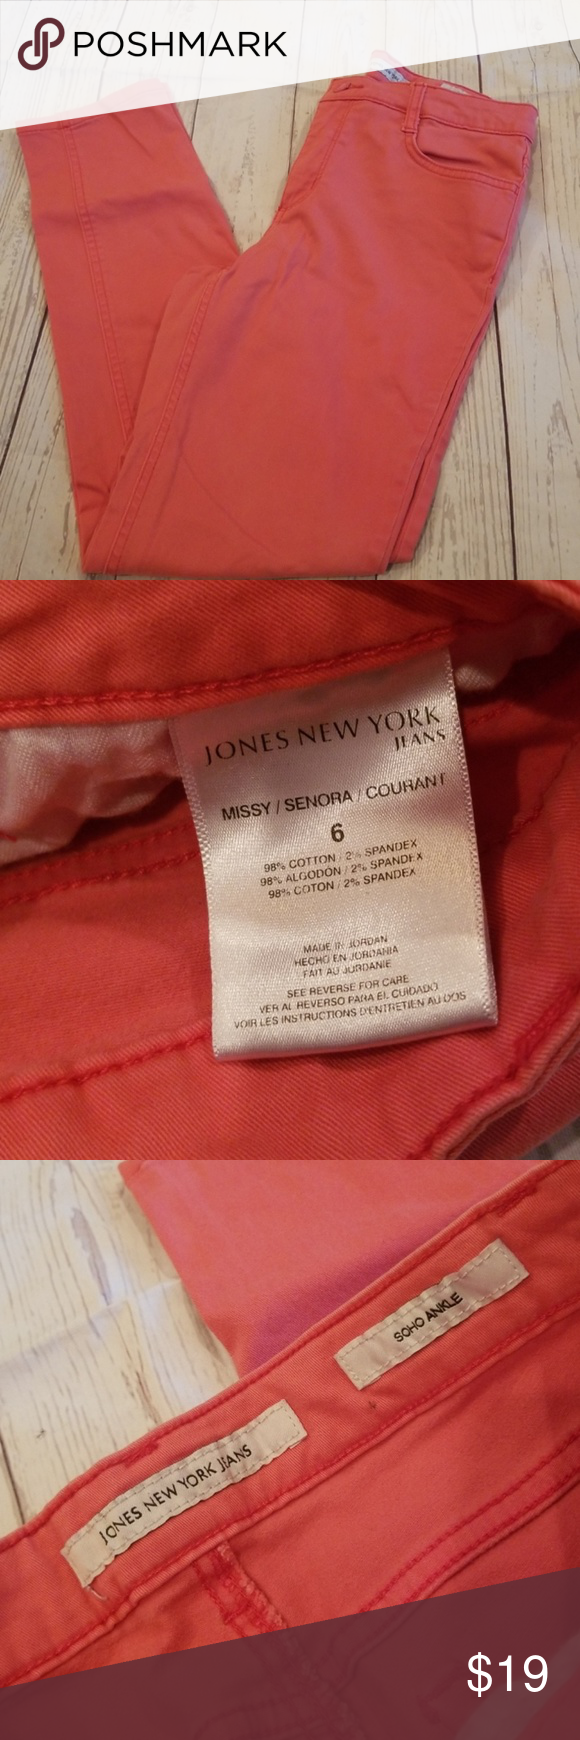 Jones New York Soho Ankle Coral Pants Clearance Coral Pants Jones New York New York Soho